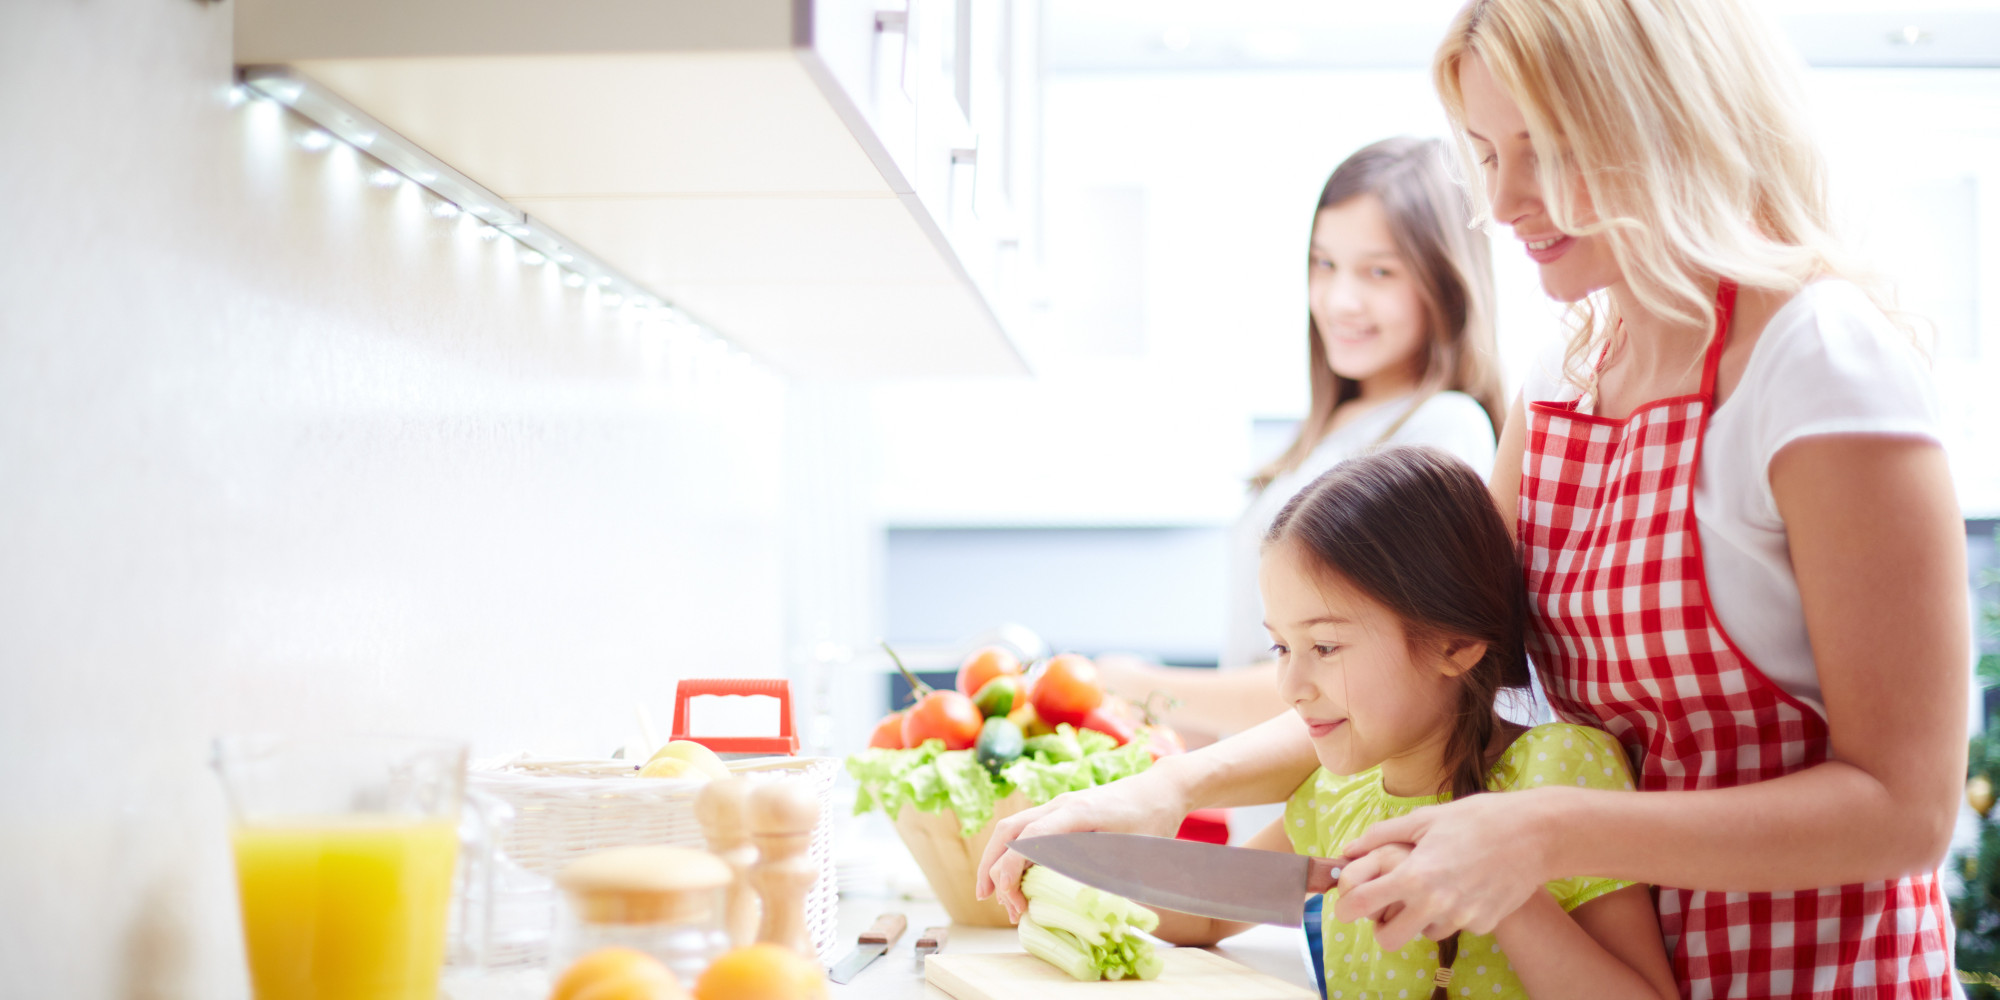 10 Ideas to Engage Toddlers in the Kitchen | HuffPost